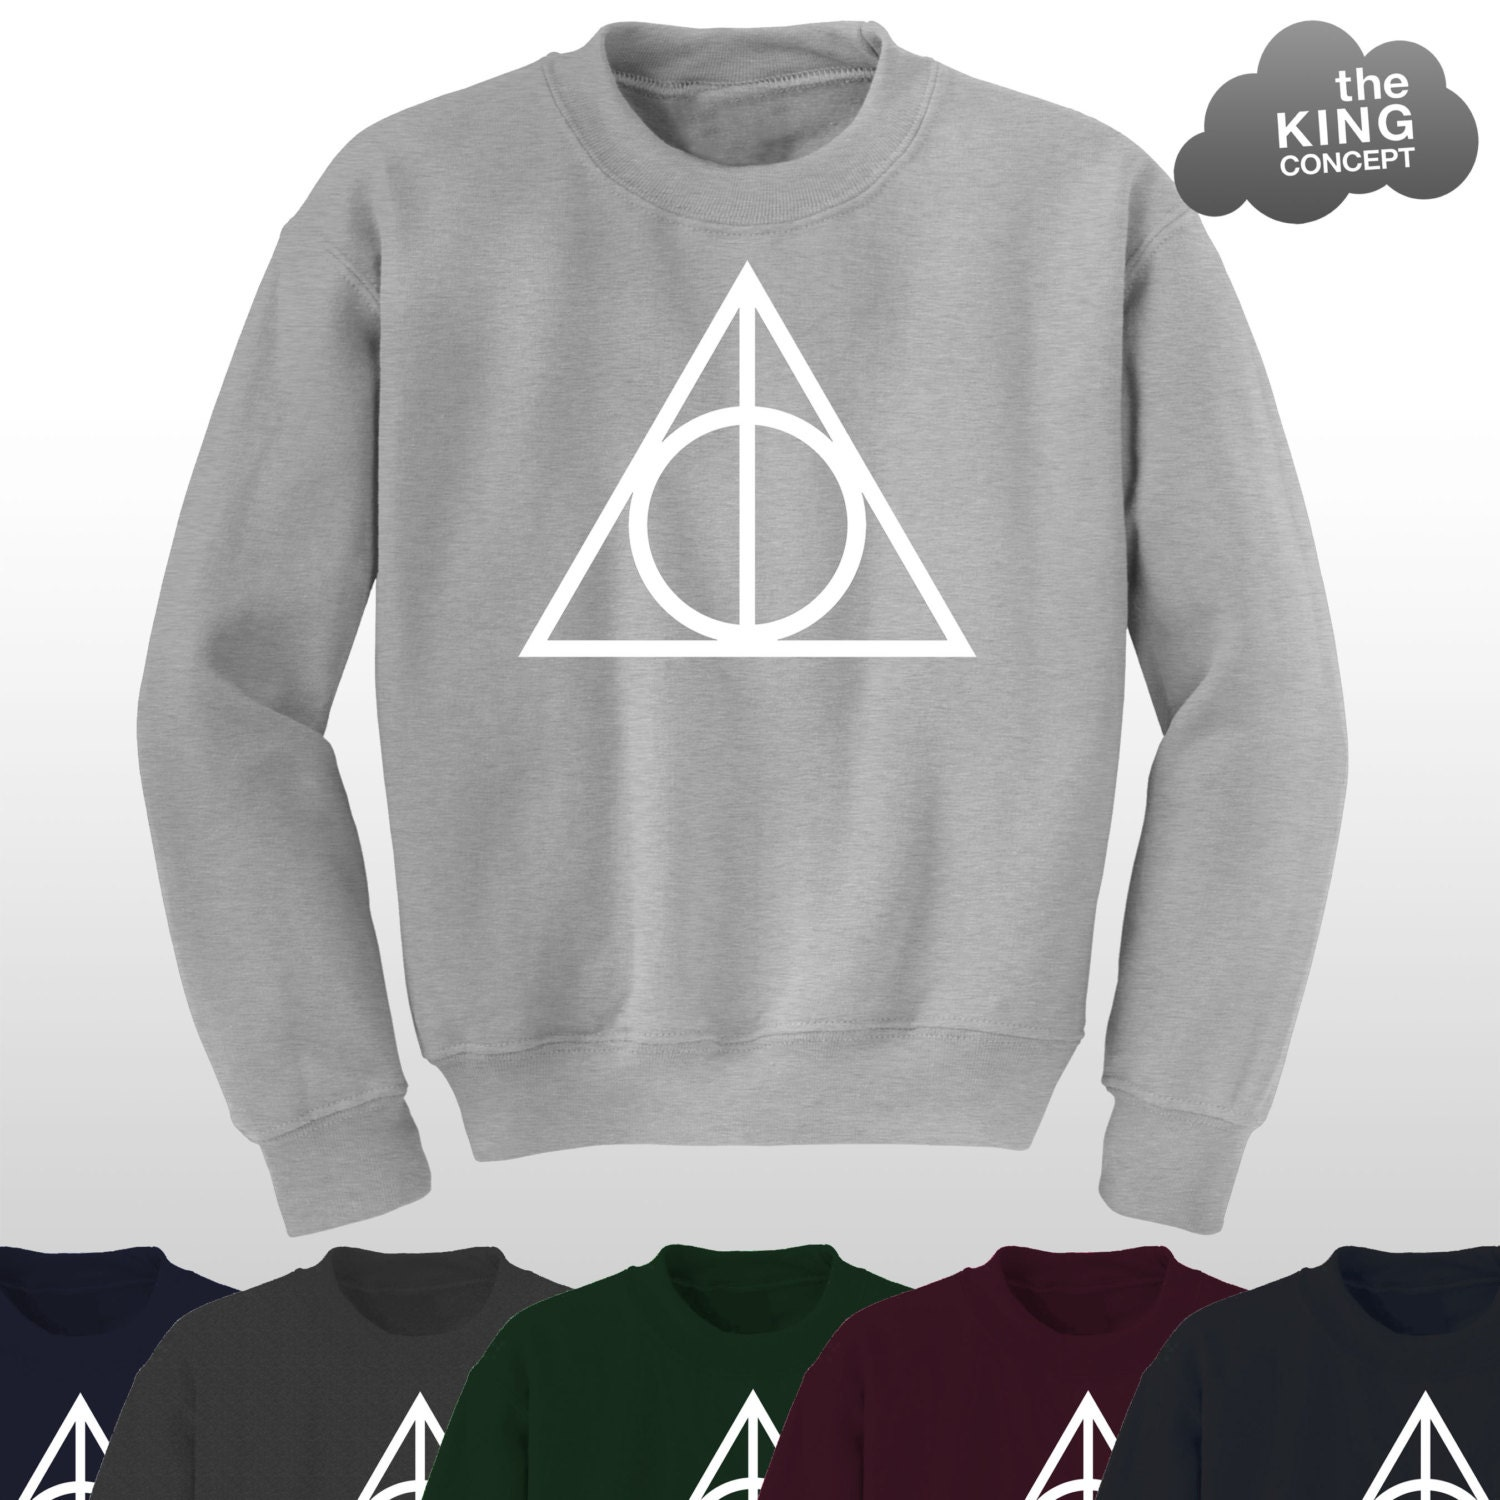 Deathly Hallows Jumper Top Sweater Harry Potter Sweatshirt The Logo Voldemort Triangle